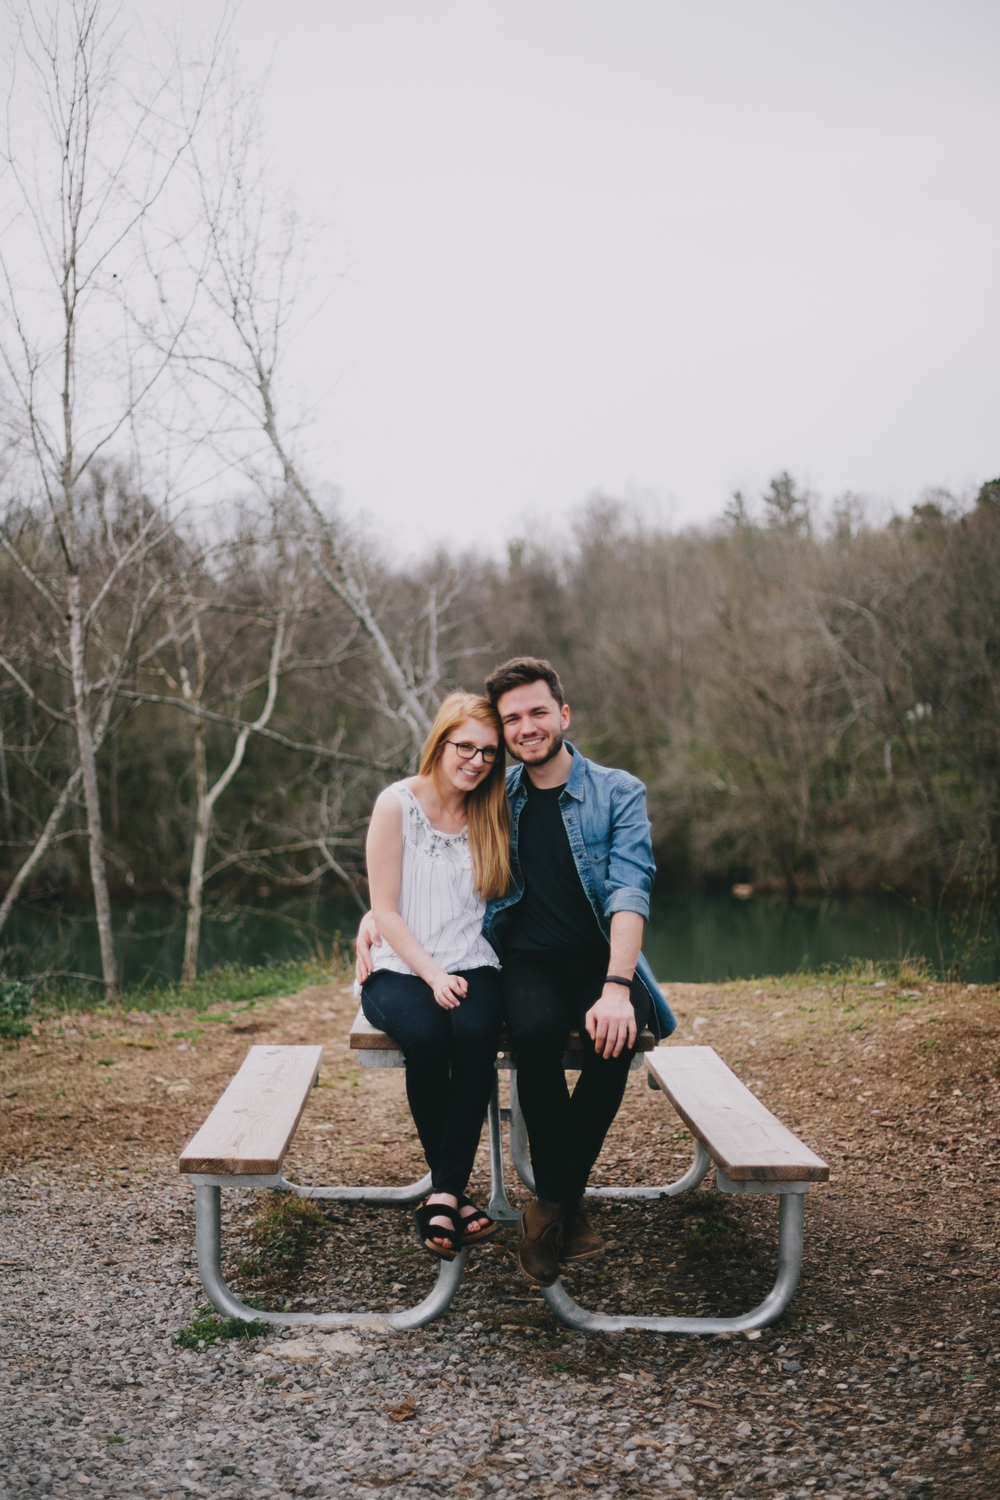 Erin + Zack Couples Session-8.jpg